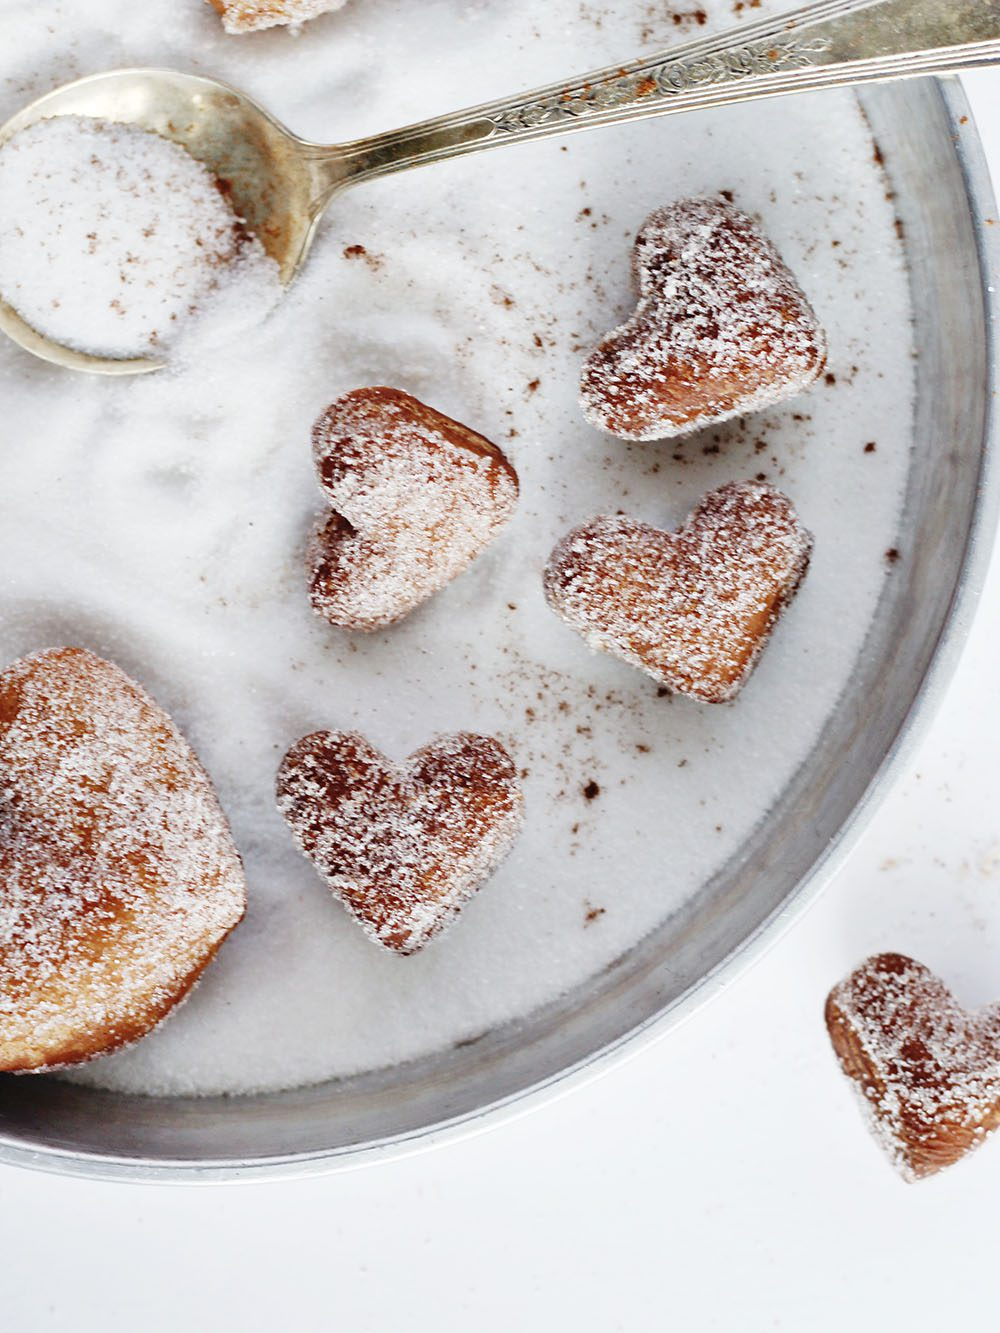 How to make vegan heart shaped donuts